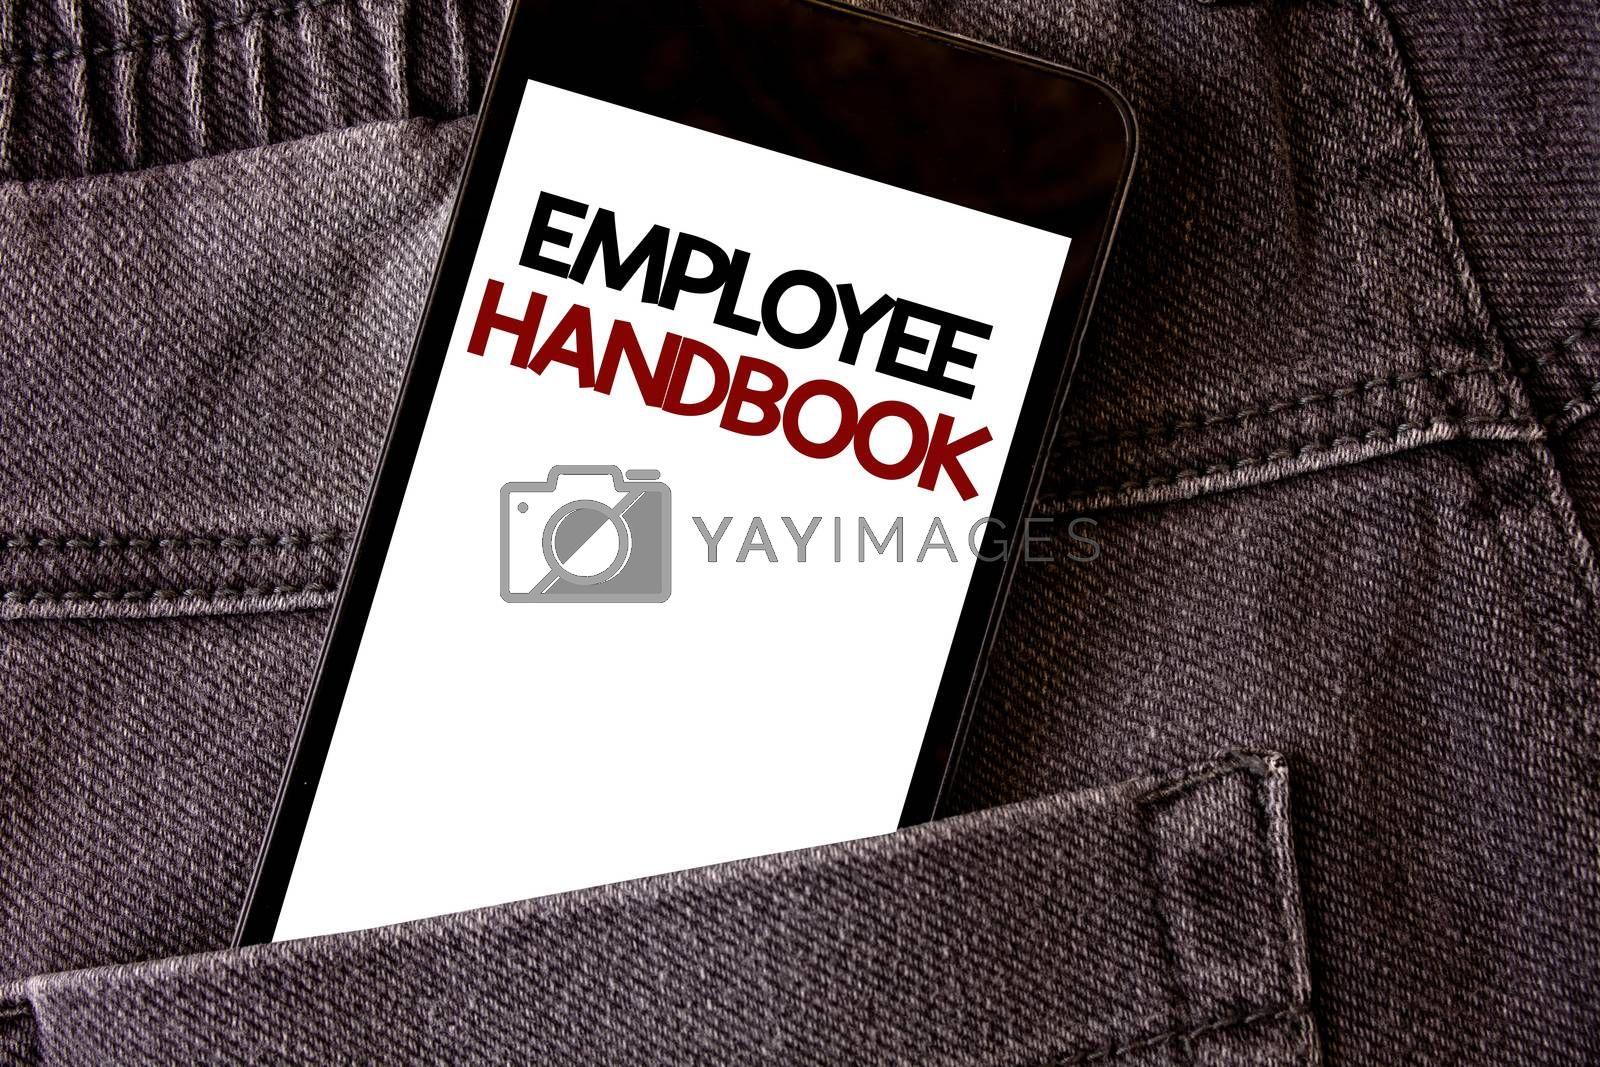 Writing note showing Employee Handbook. Business photo showcasing Document Manual Regulations Rules Guidebook Policy Code Words written black Phone white Screen Back pocket grey jeans trousers